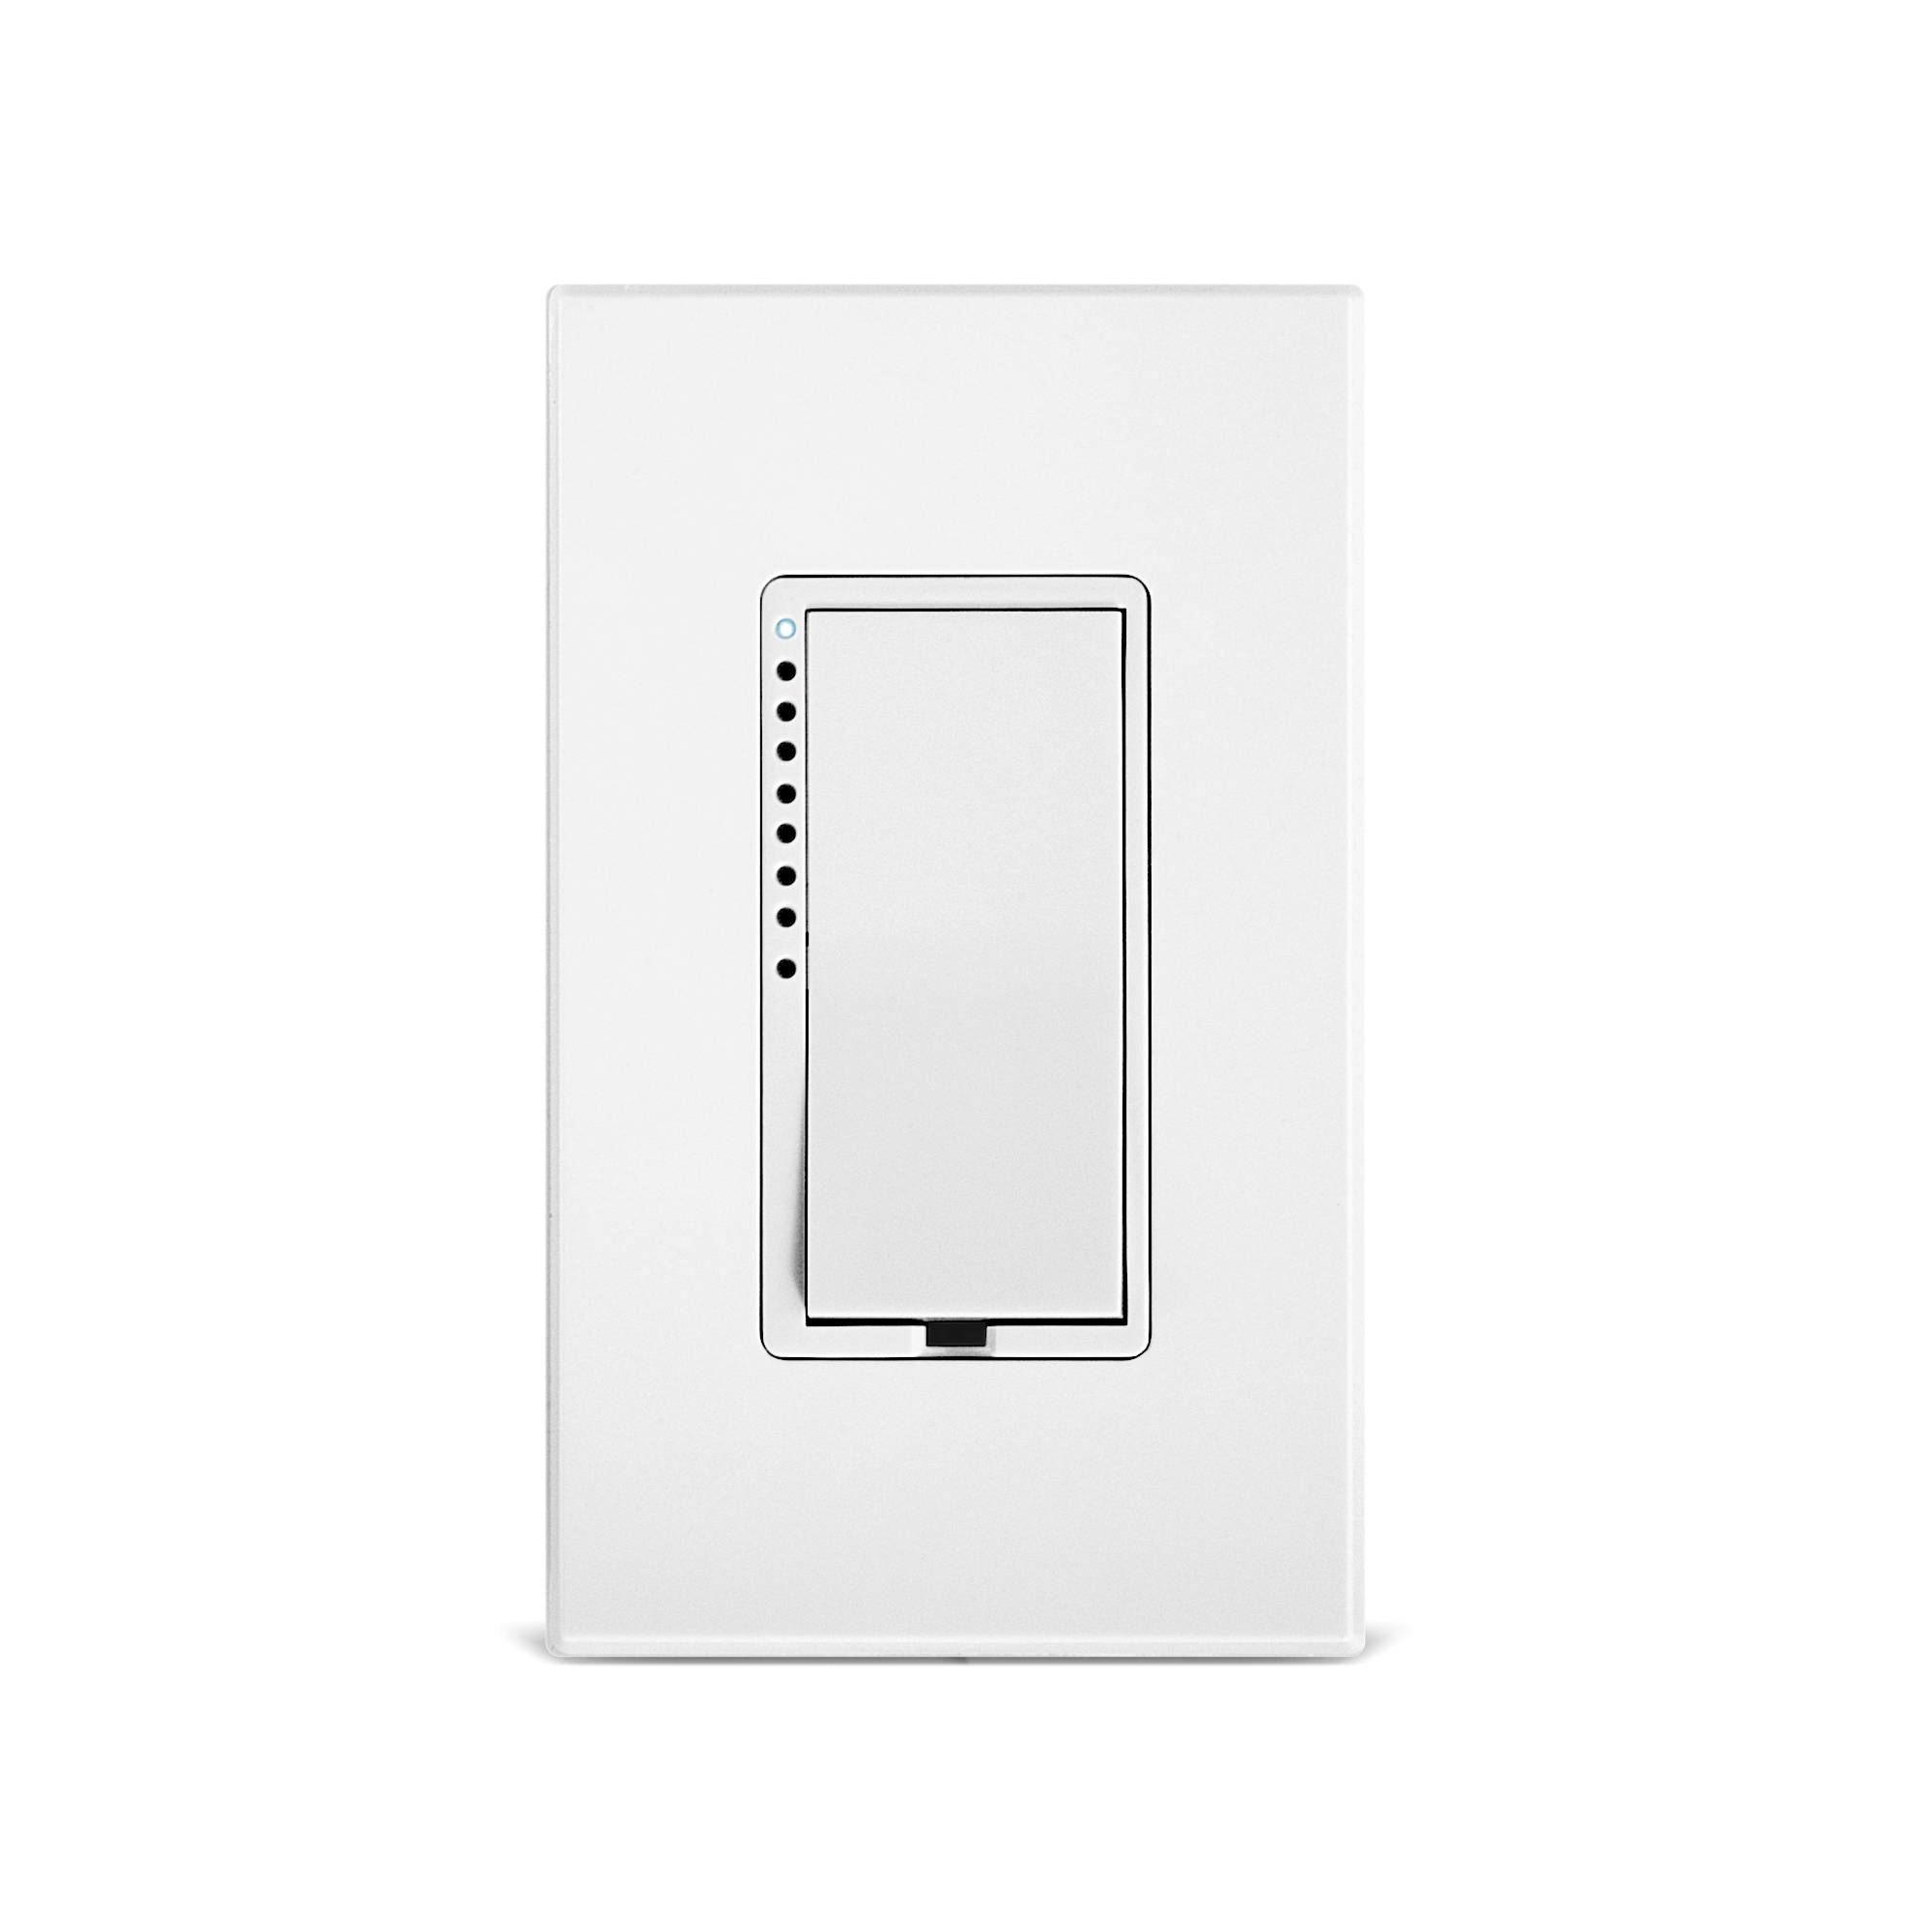 insteon dimmer switch 2432 292 b h photo video. Black Bedroom Furniture Sets. Home Design Ideas